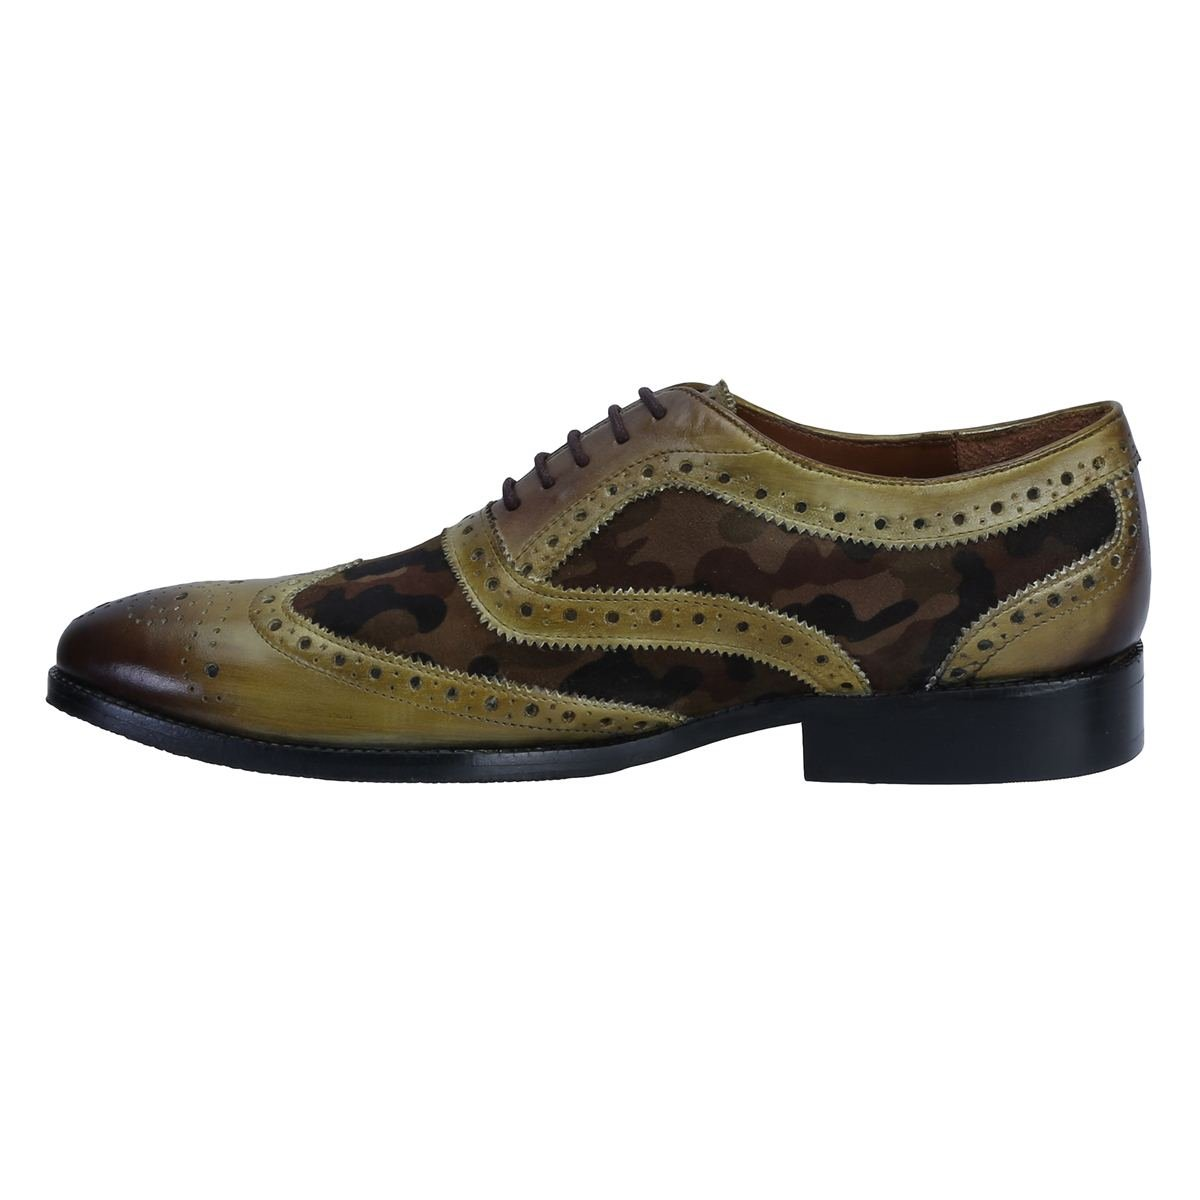 9083ff3bffbd Olive Green Hand Finished Leather Brogue Formal Shoe With Camoflauge Velvet  For Men By BRUNE Hand made leather shoe Designer Leather Shoe Hand Finished  ...